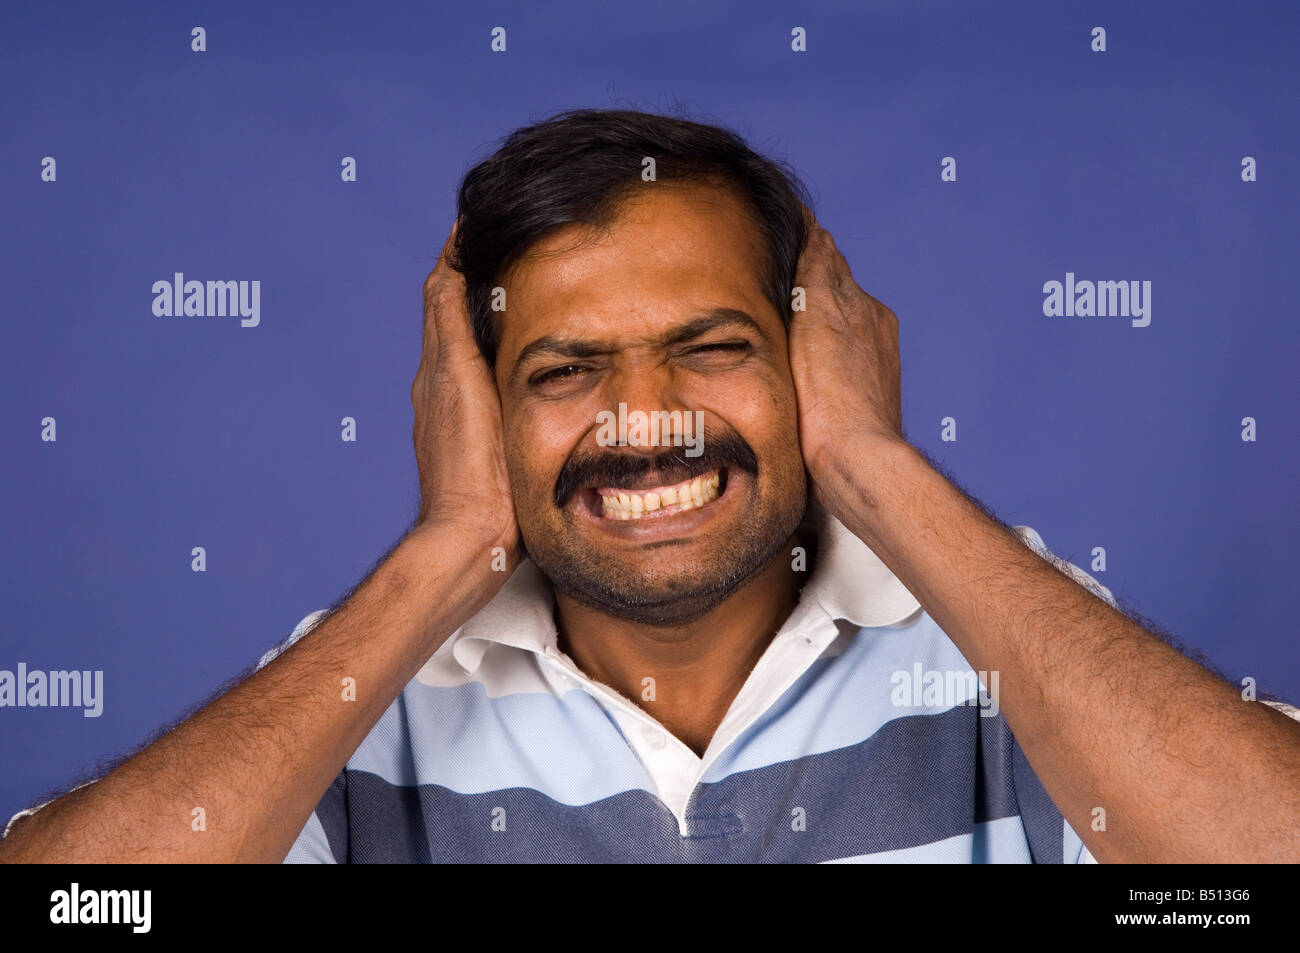 Indian man hands covering ears Stock Photo